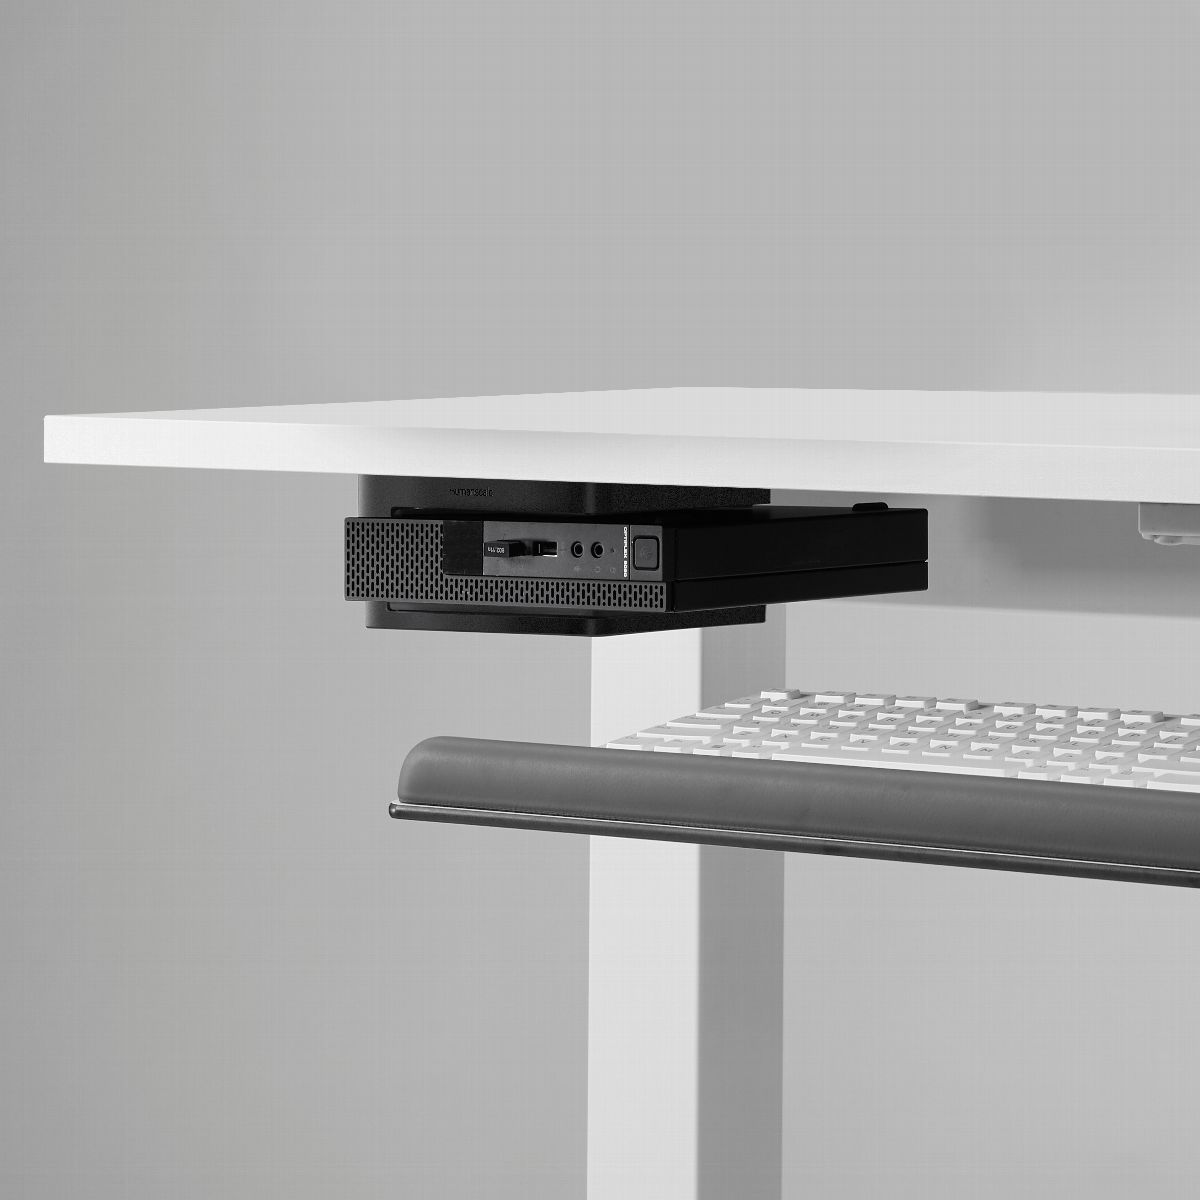 Thin Client Holder